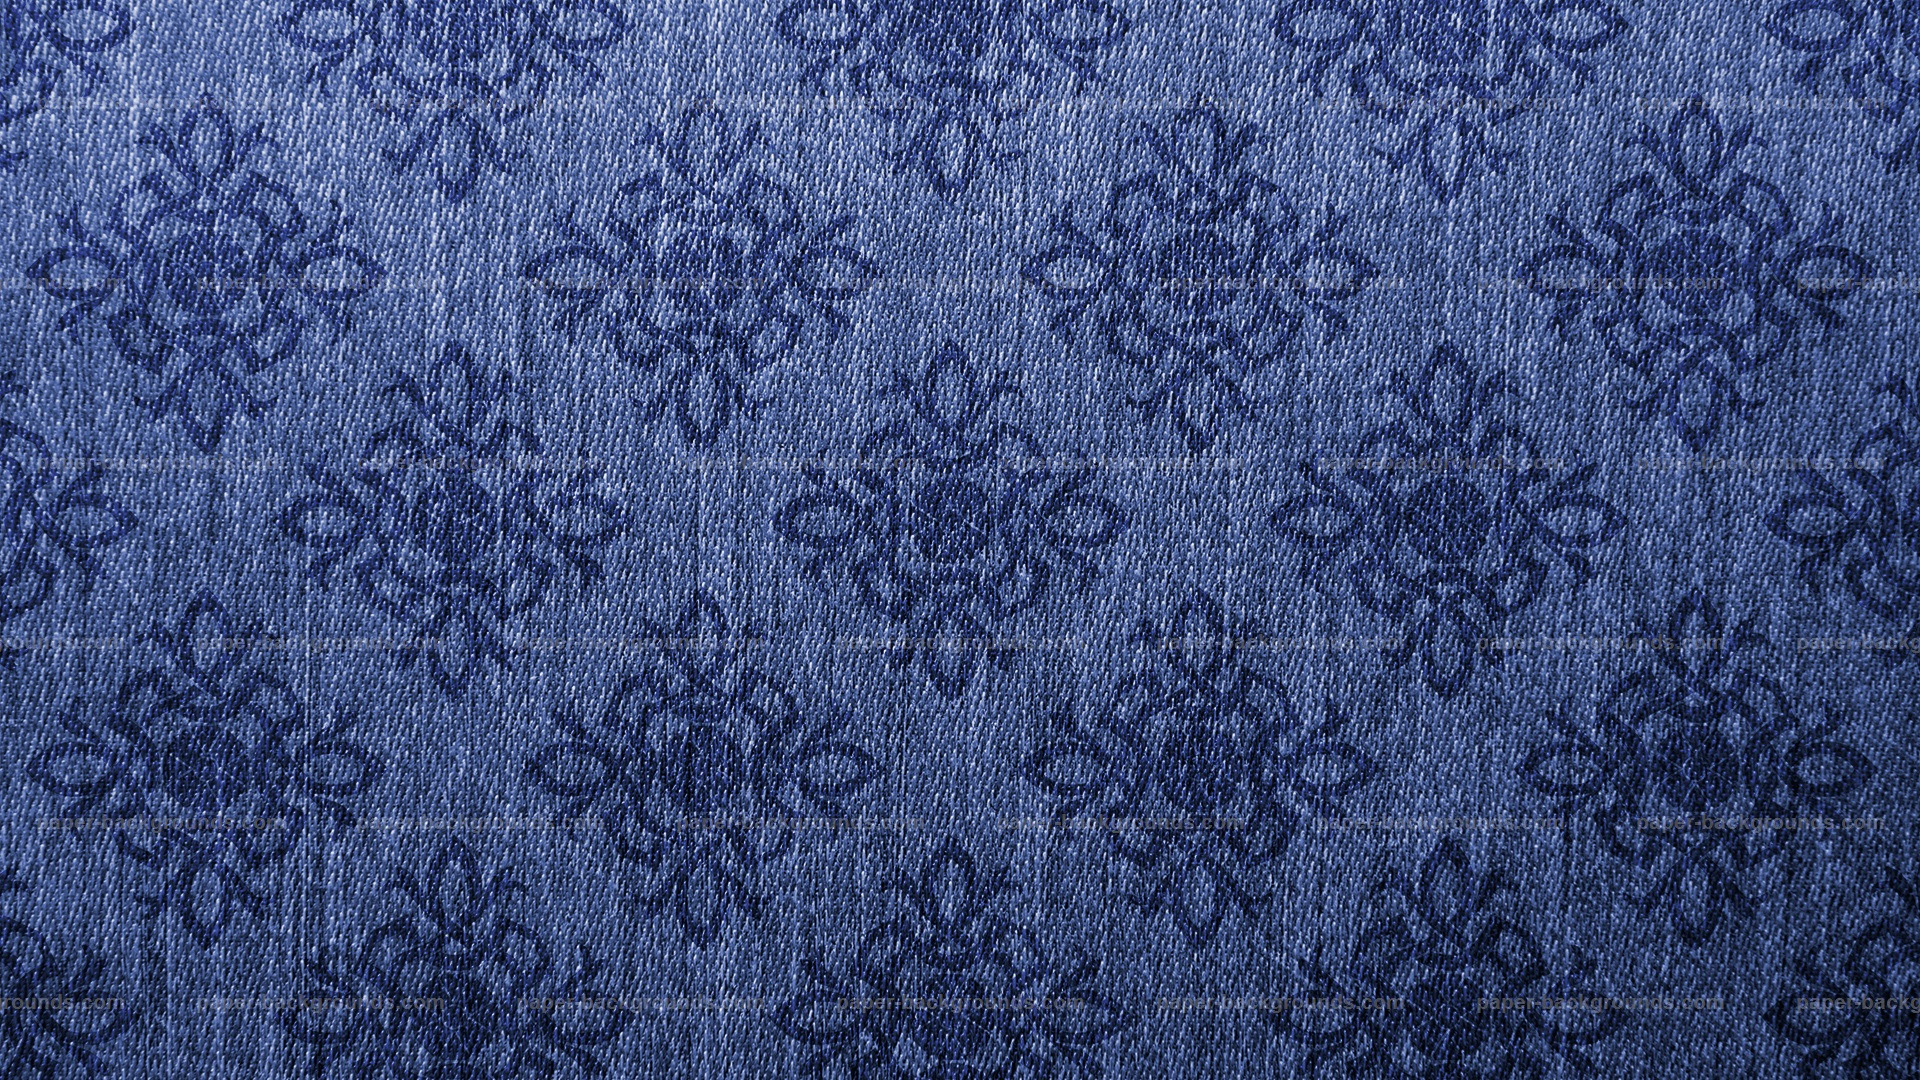 texture, background, blue, canvas, vintage, damask, ground, back ...: hdw.eweb4.com/out/809570.html